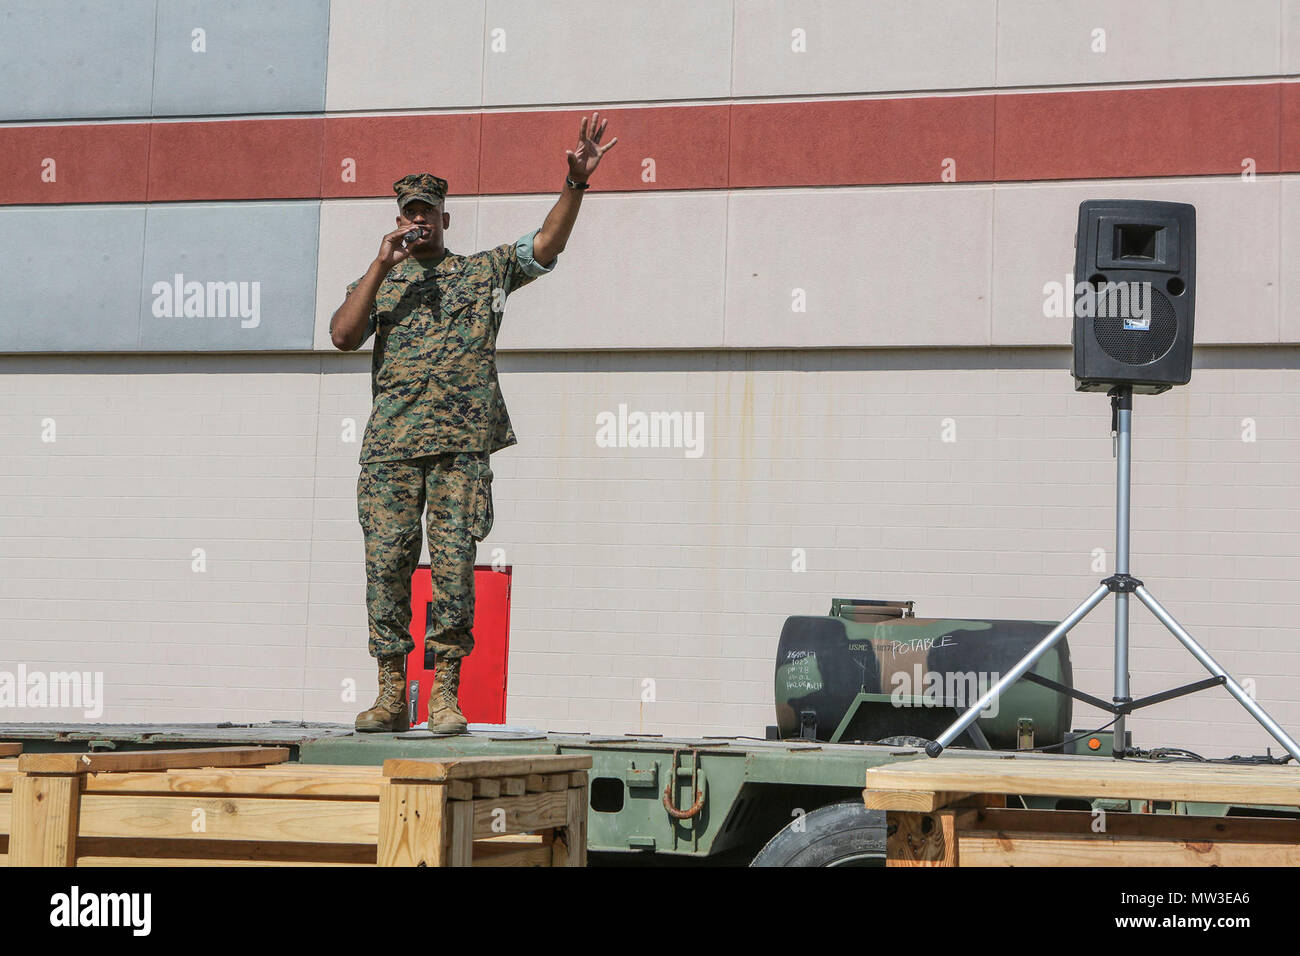 U.S. Marine Corps Lt. Col. Erik J. Smith, Commanding Officer, 2nd Maintenance Battalion, Combat Logistics Regiment 25, 2nd Marine Logistics Group, speaks at the battalion's open house event on Camp Lejeune, N.C., April 27, 2017. The event was held to create an environment that provides guests with an understanding of the battalion's mission, provide information from outside agencies, and create an opportunity for families to meet others assigned to 2d Maintenance Battalion. - Stock Image